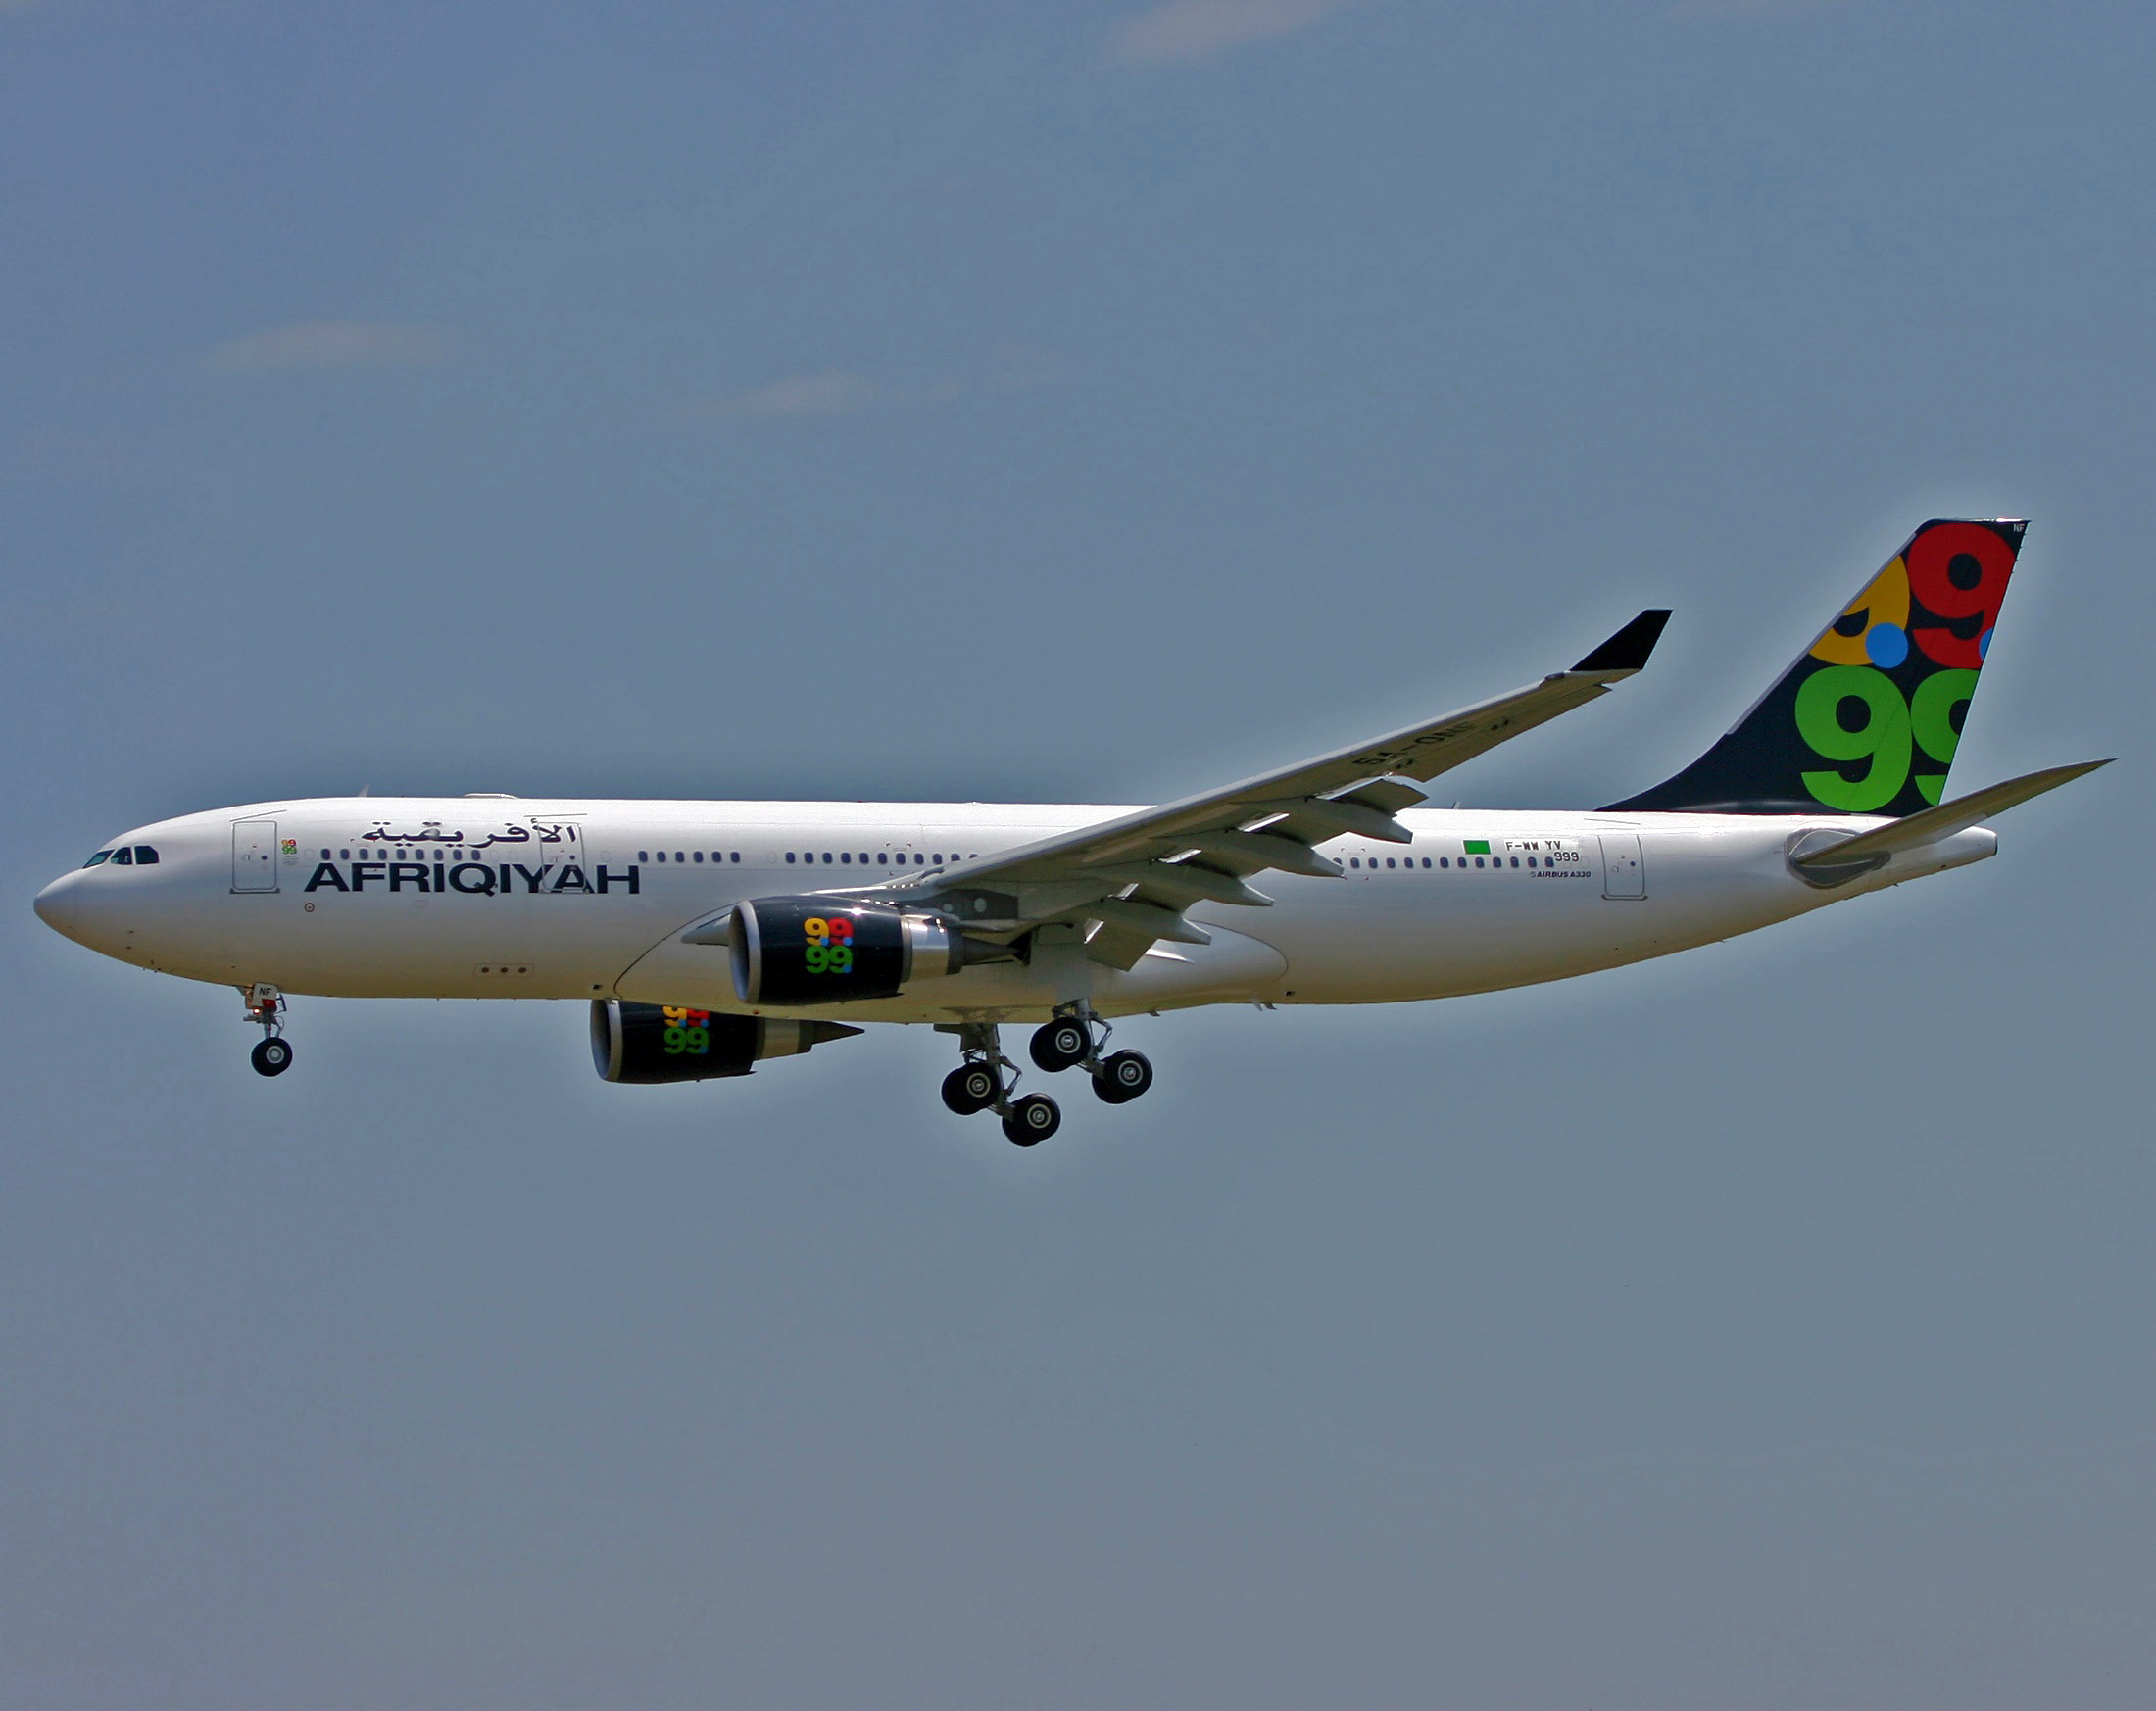 Airbus A330-202 F-WWYV (msn 999) makes its first flight at Toulouse on June 18.  It will be delivered to Afriqiyah Airways (Tripoli) as 5A-ONF. The new airliner displays the revised 2007 livery.  Copyright Photo: Eurospot.